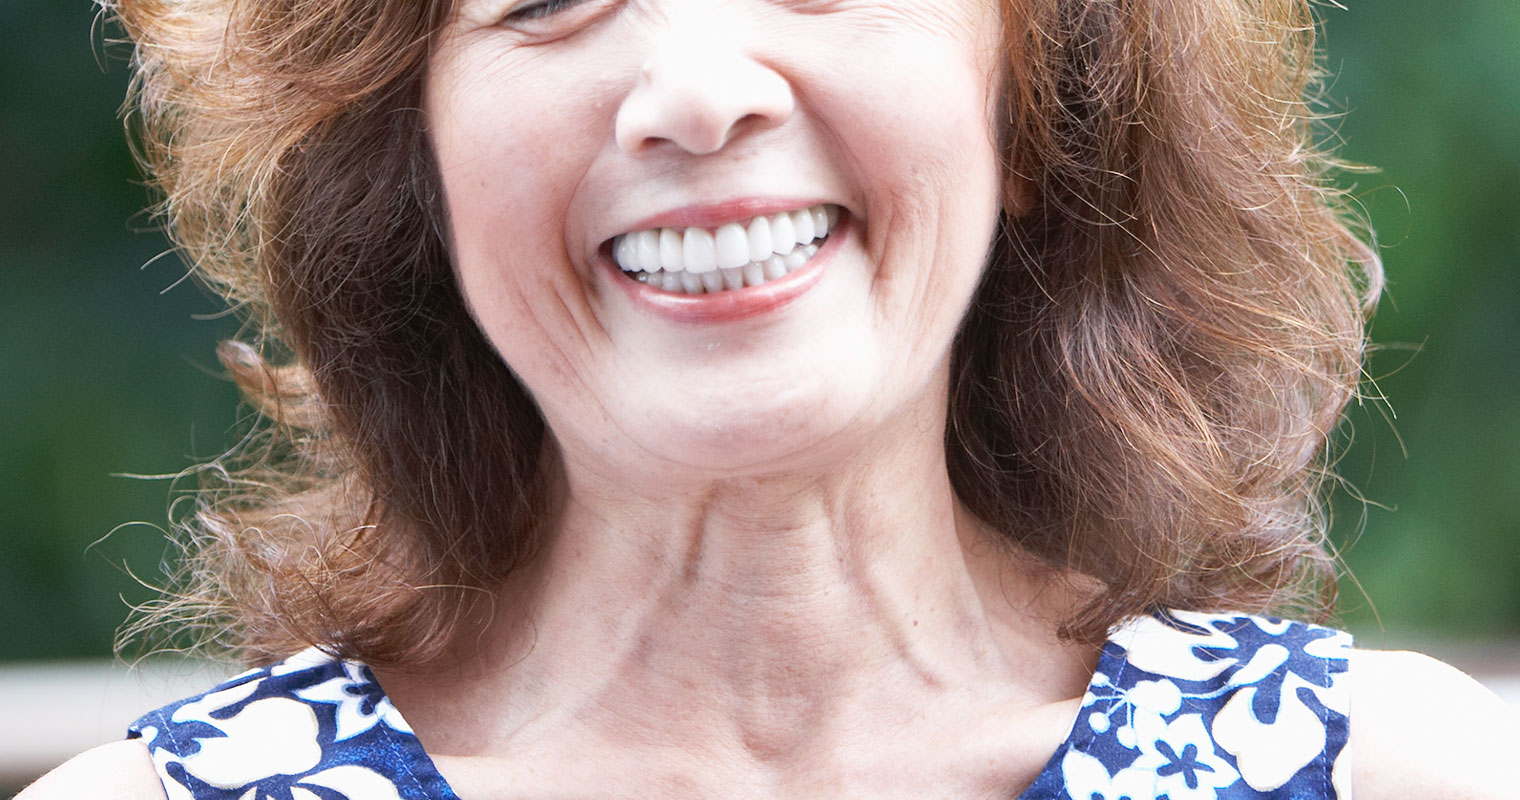 Neck Wrinkles Give Away Your Age Easily: Learn 5 Natural Remedies